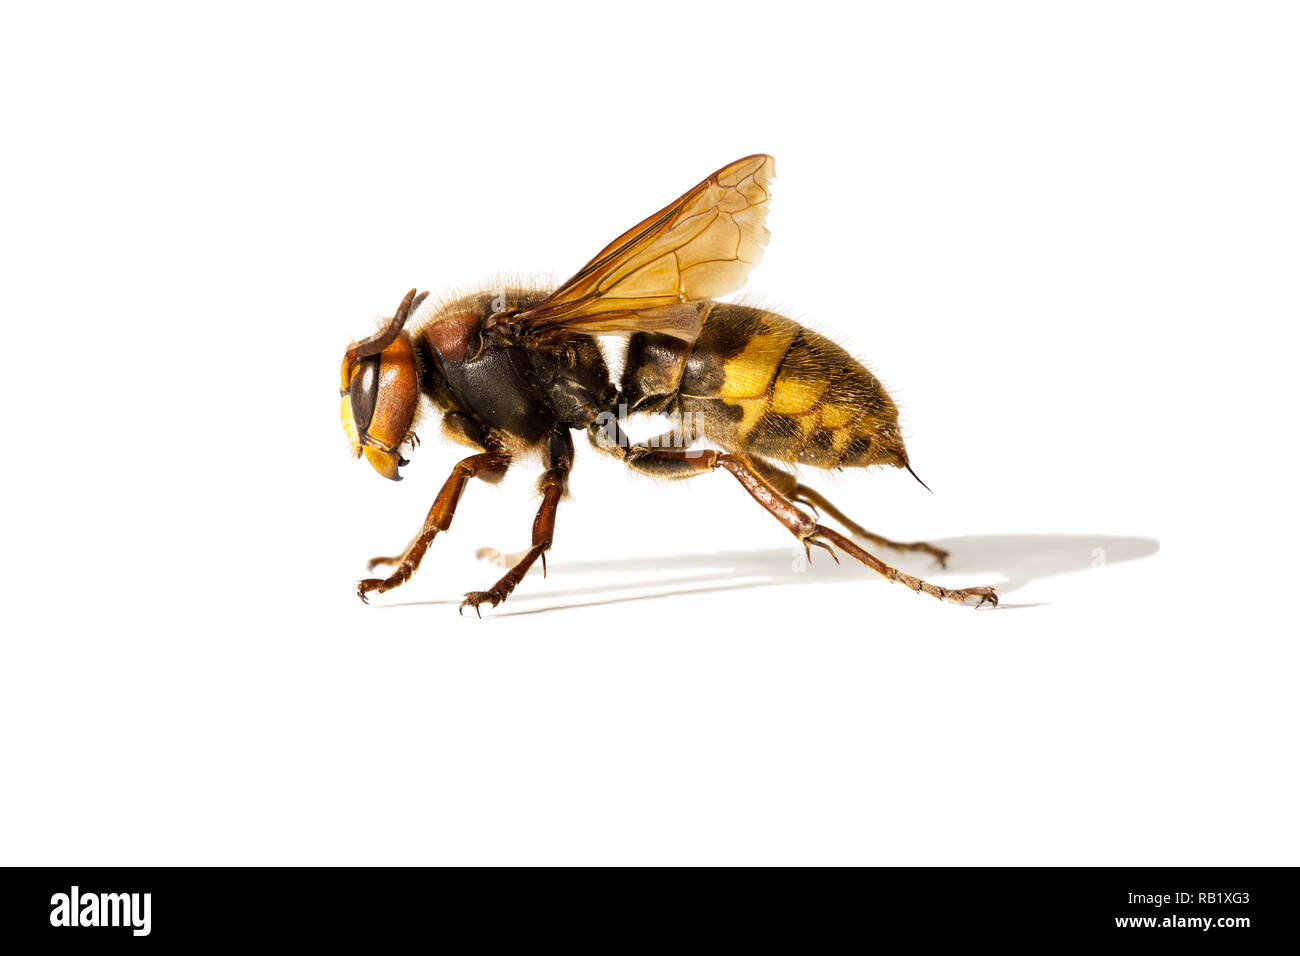 A photo of the European Hornet (Vespa crabro) isolated on a white background - Stock Image